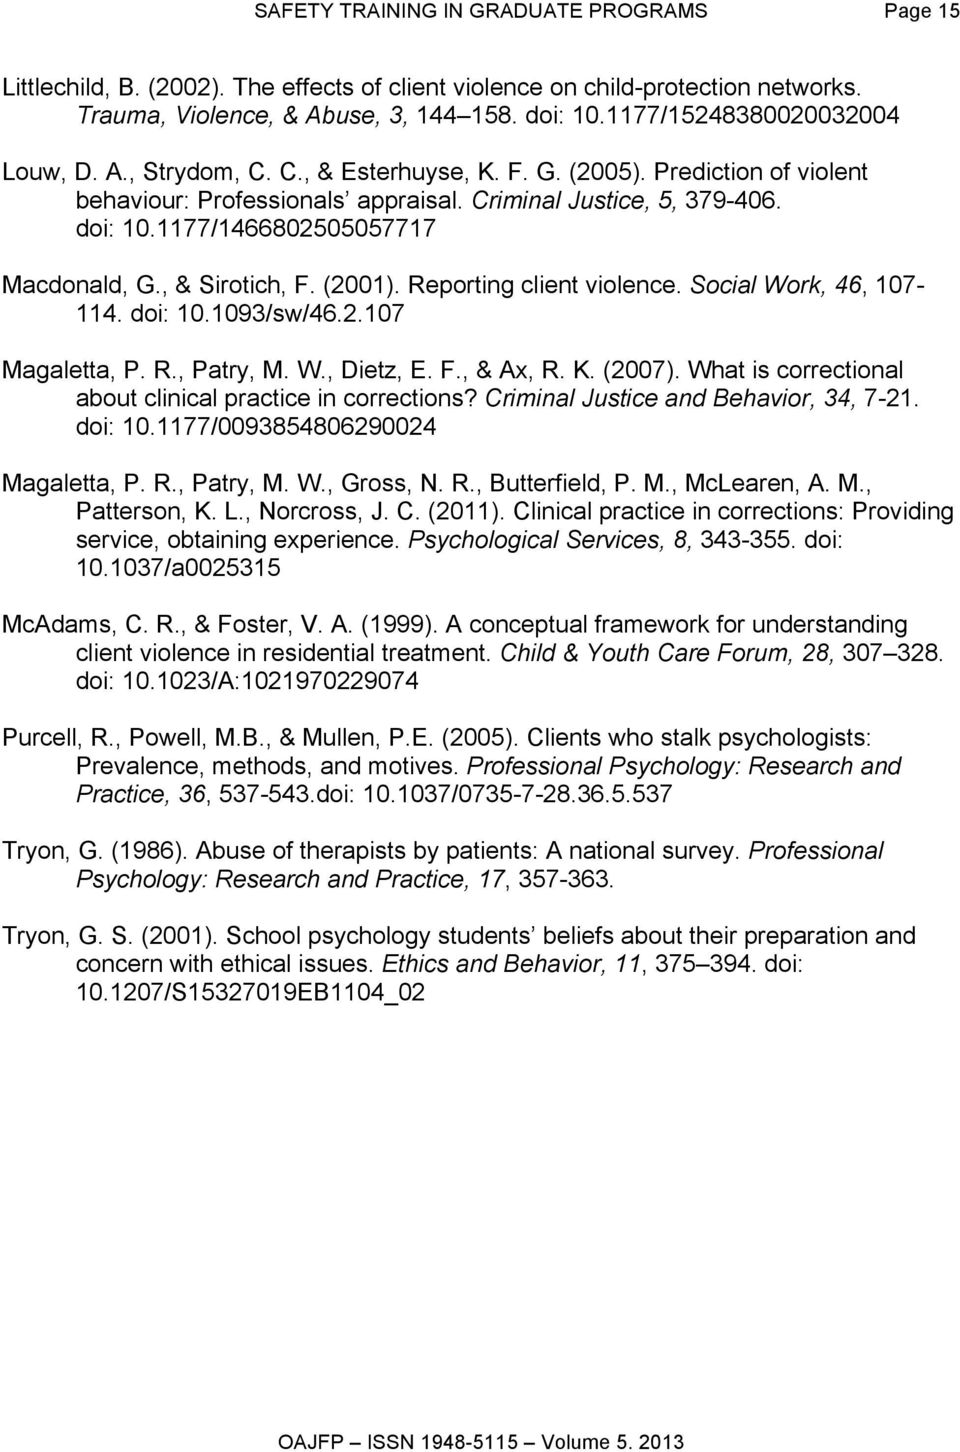 1177/1466802505057717 Macdonald, G., & Sirotich, F. (2001). Reporting client violence. Social Work, 46, 107-114. doi: 10.1093/sw/46.2.107 Magaletta, P. R., Patry, M. W., Dietz, E. F., & Ax, R. K.